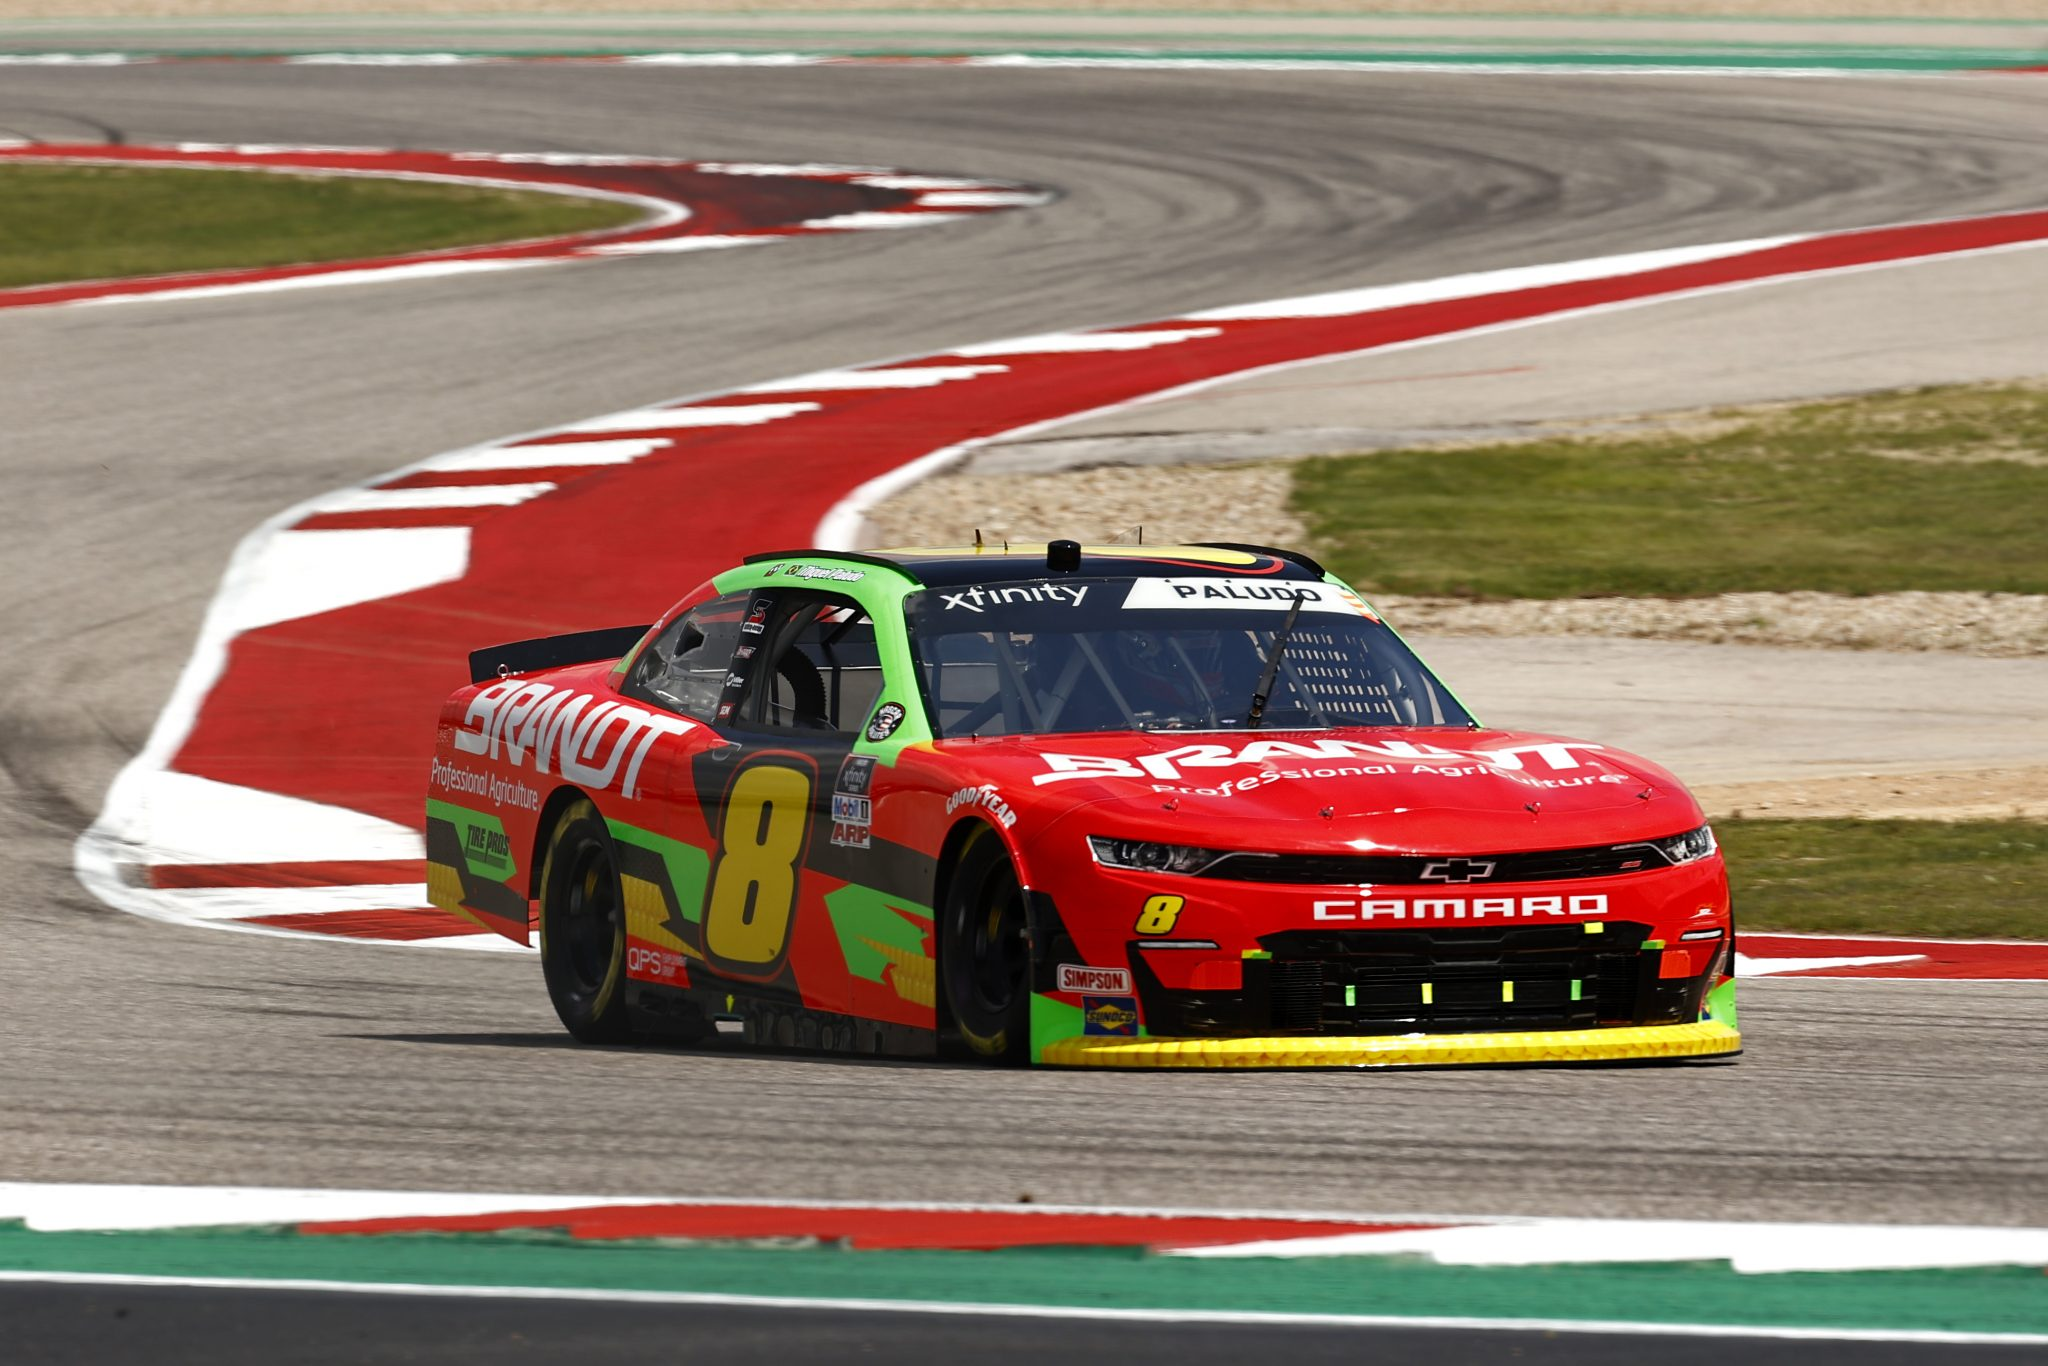 AUSTIN, TEXAS - MAY 21: Miguel Paludo, driver of the #8 BRANDT Chevrolet, drives during practice for the NASCAR Xfinity Series Pit Boss 250 at Circuit of The Americas on May 21, 2021 in Austin, Texas. (Photo by Jared C. Tilton/Getty Images) | Getty Images